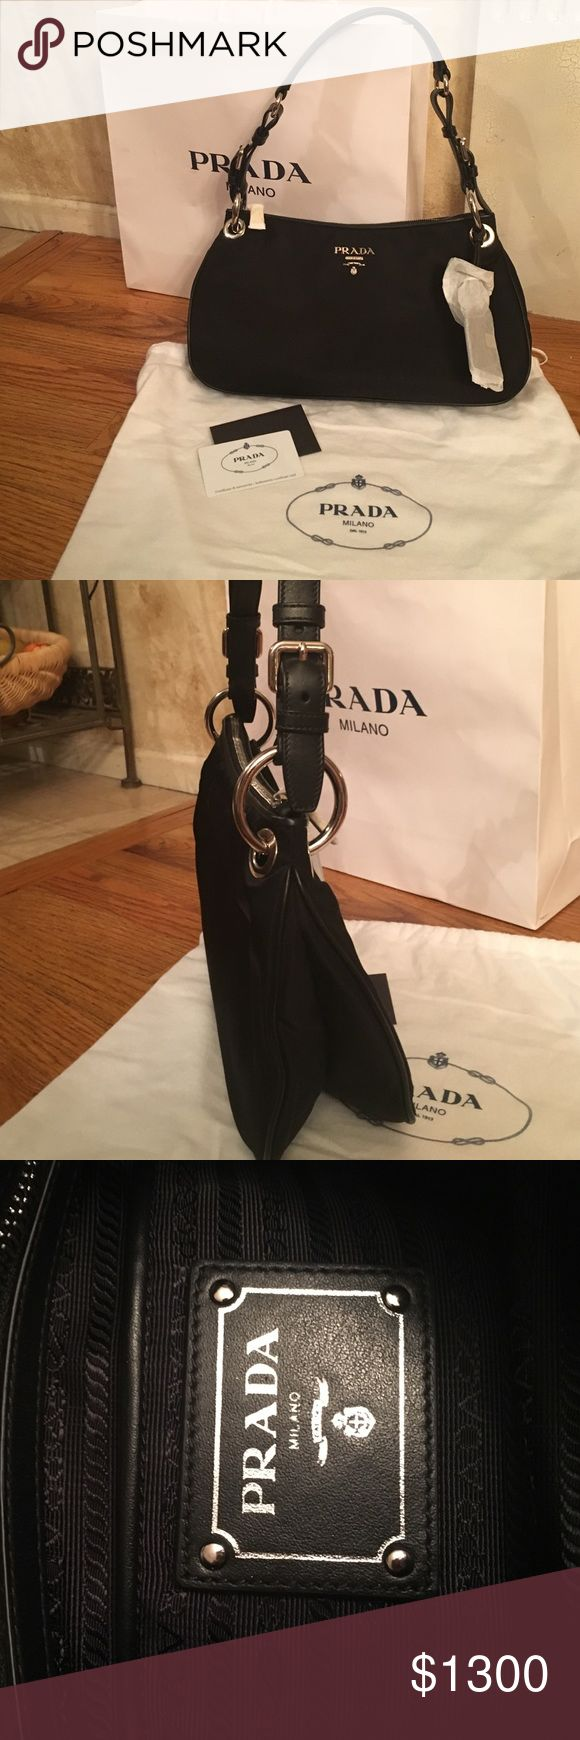 GORGEOUS Black Prada Handbag  NWOT BRAND NEW! Authentic Black Prada Handbag  NWOT. Comes with linen bag and authenticity certificate card  Never Worn  Product #: BR4894  Material: Tessuto Soft Prada Bags Shoulder Bags